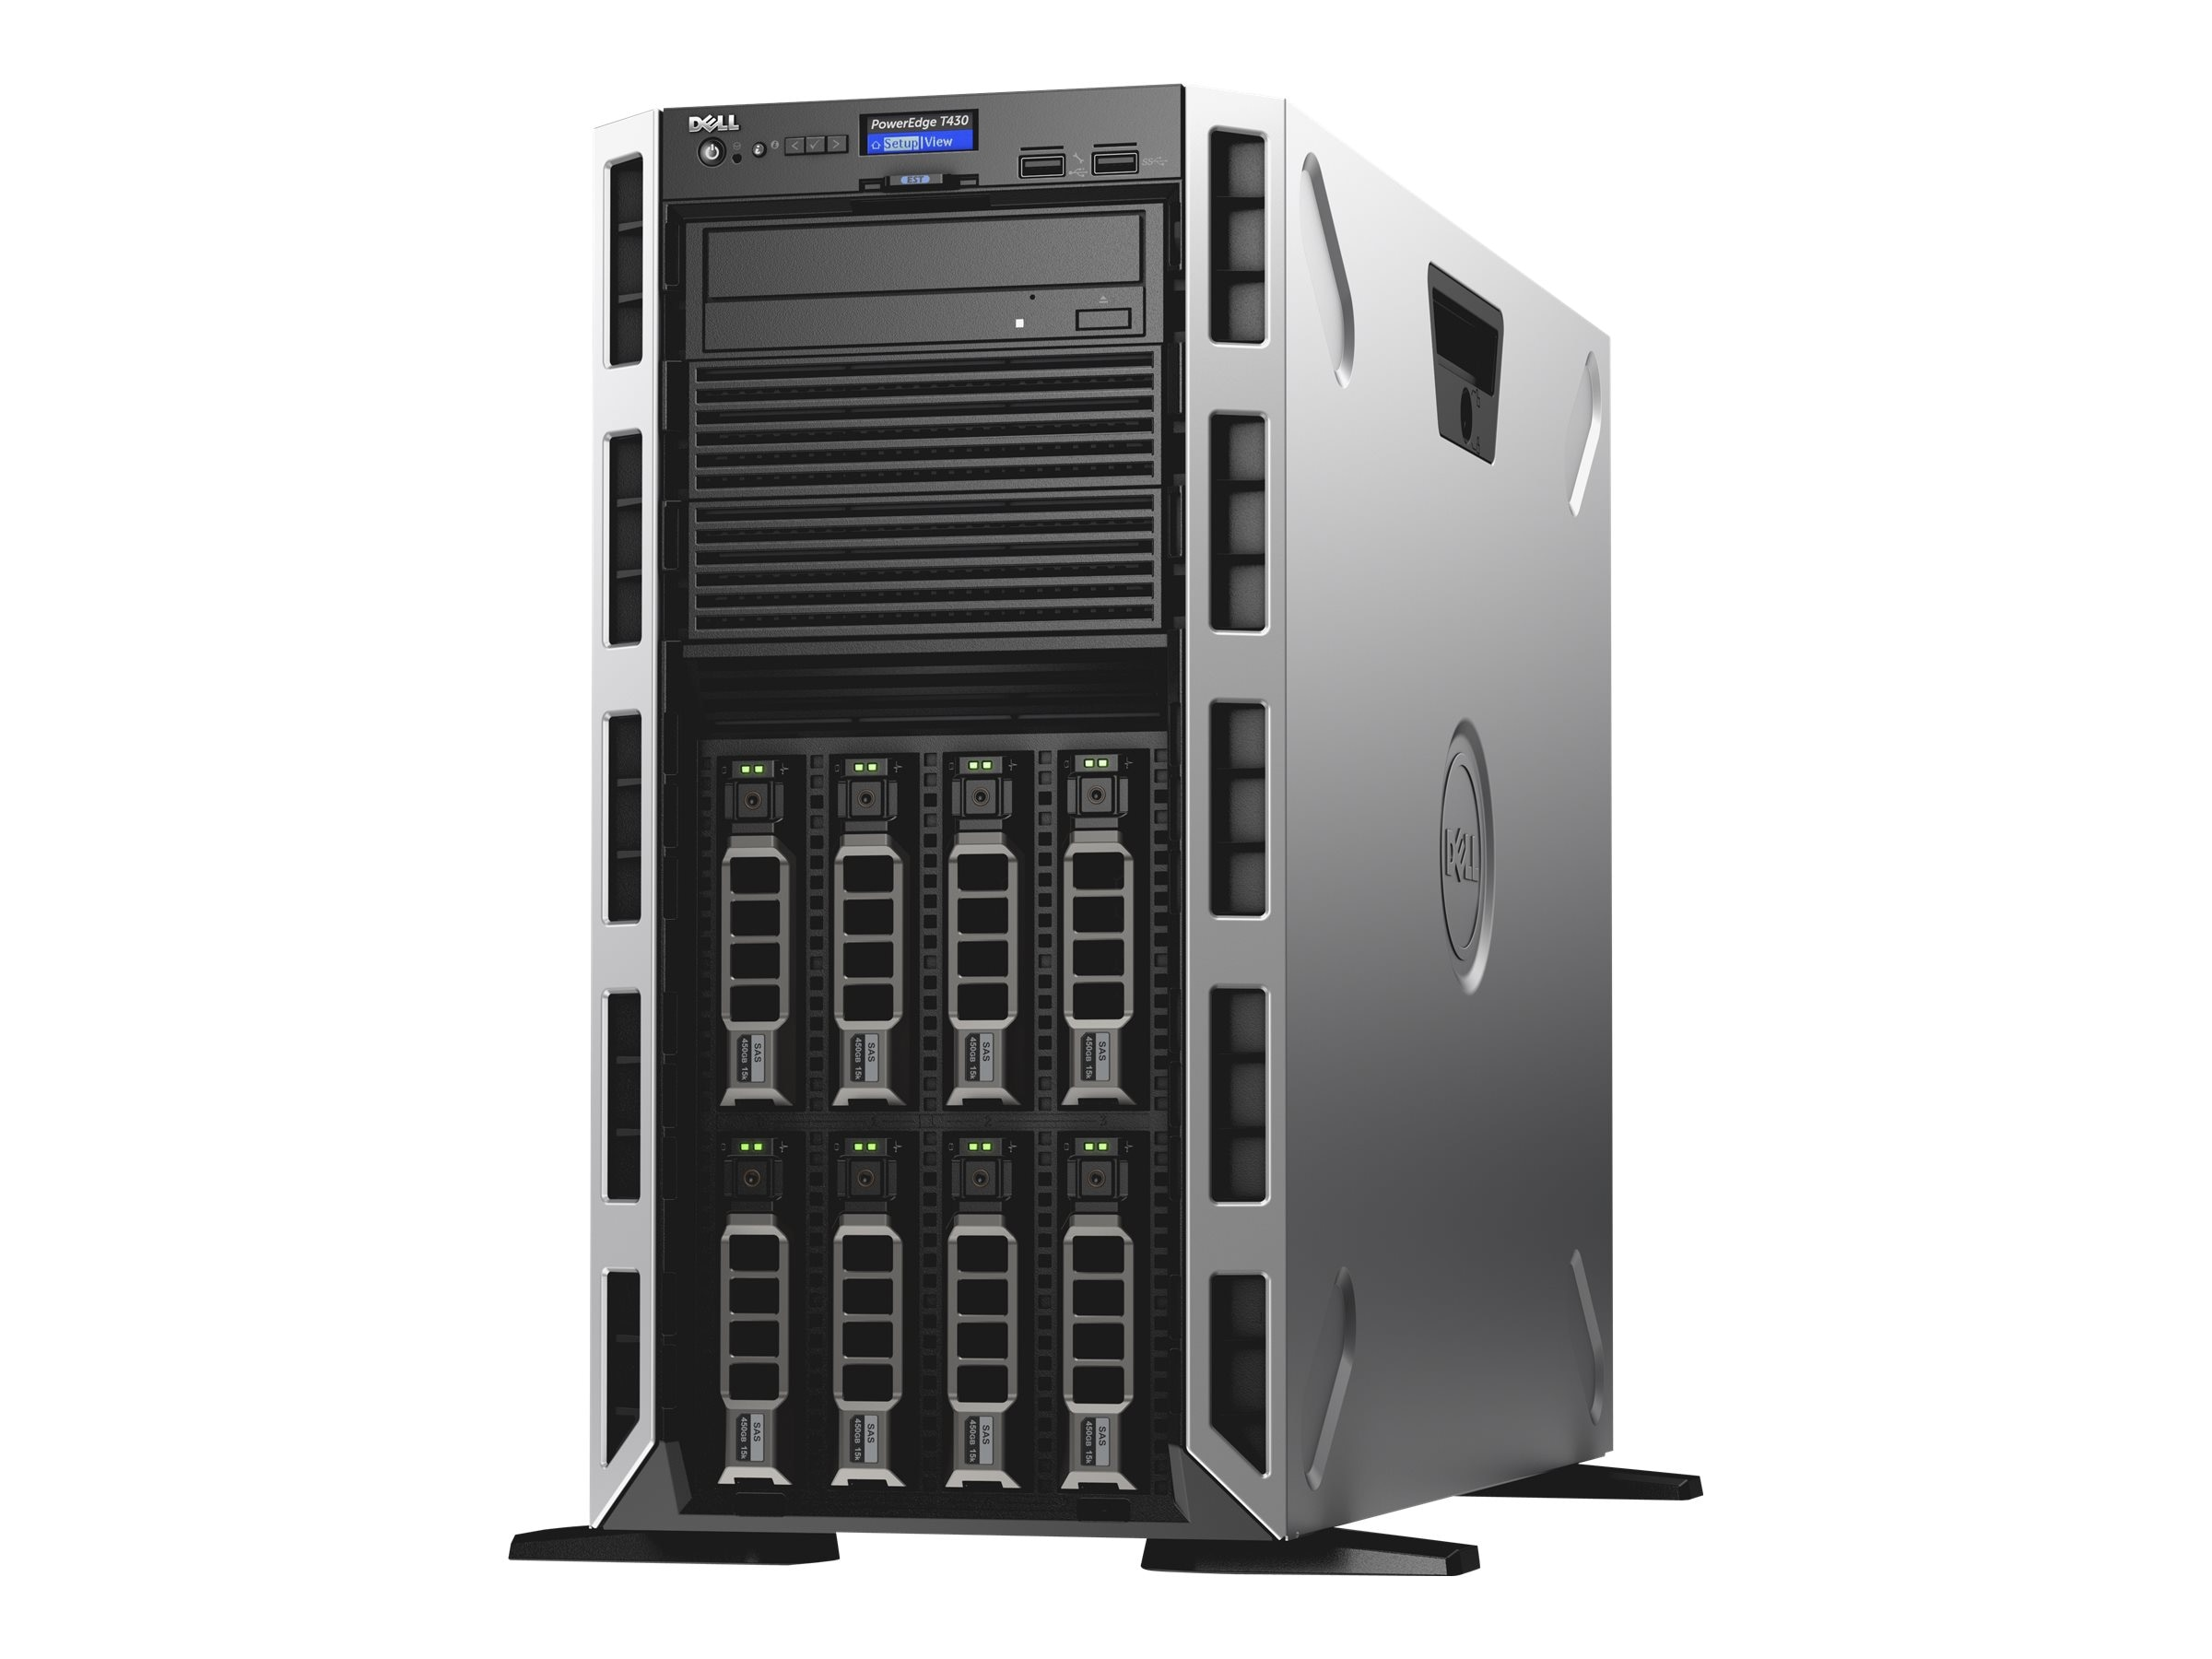 Dell PowerEdge T430 Intel 2.1GHz Xeon